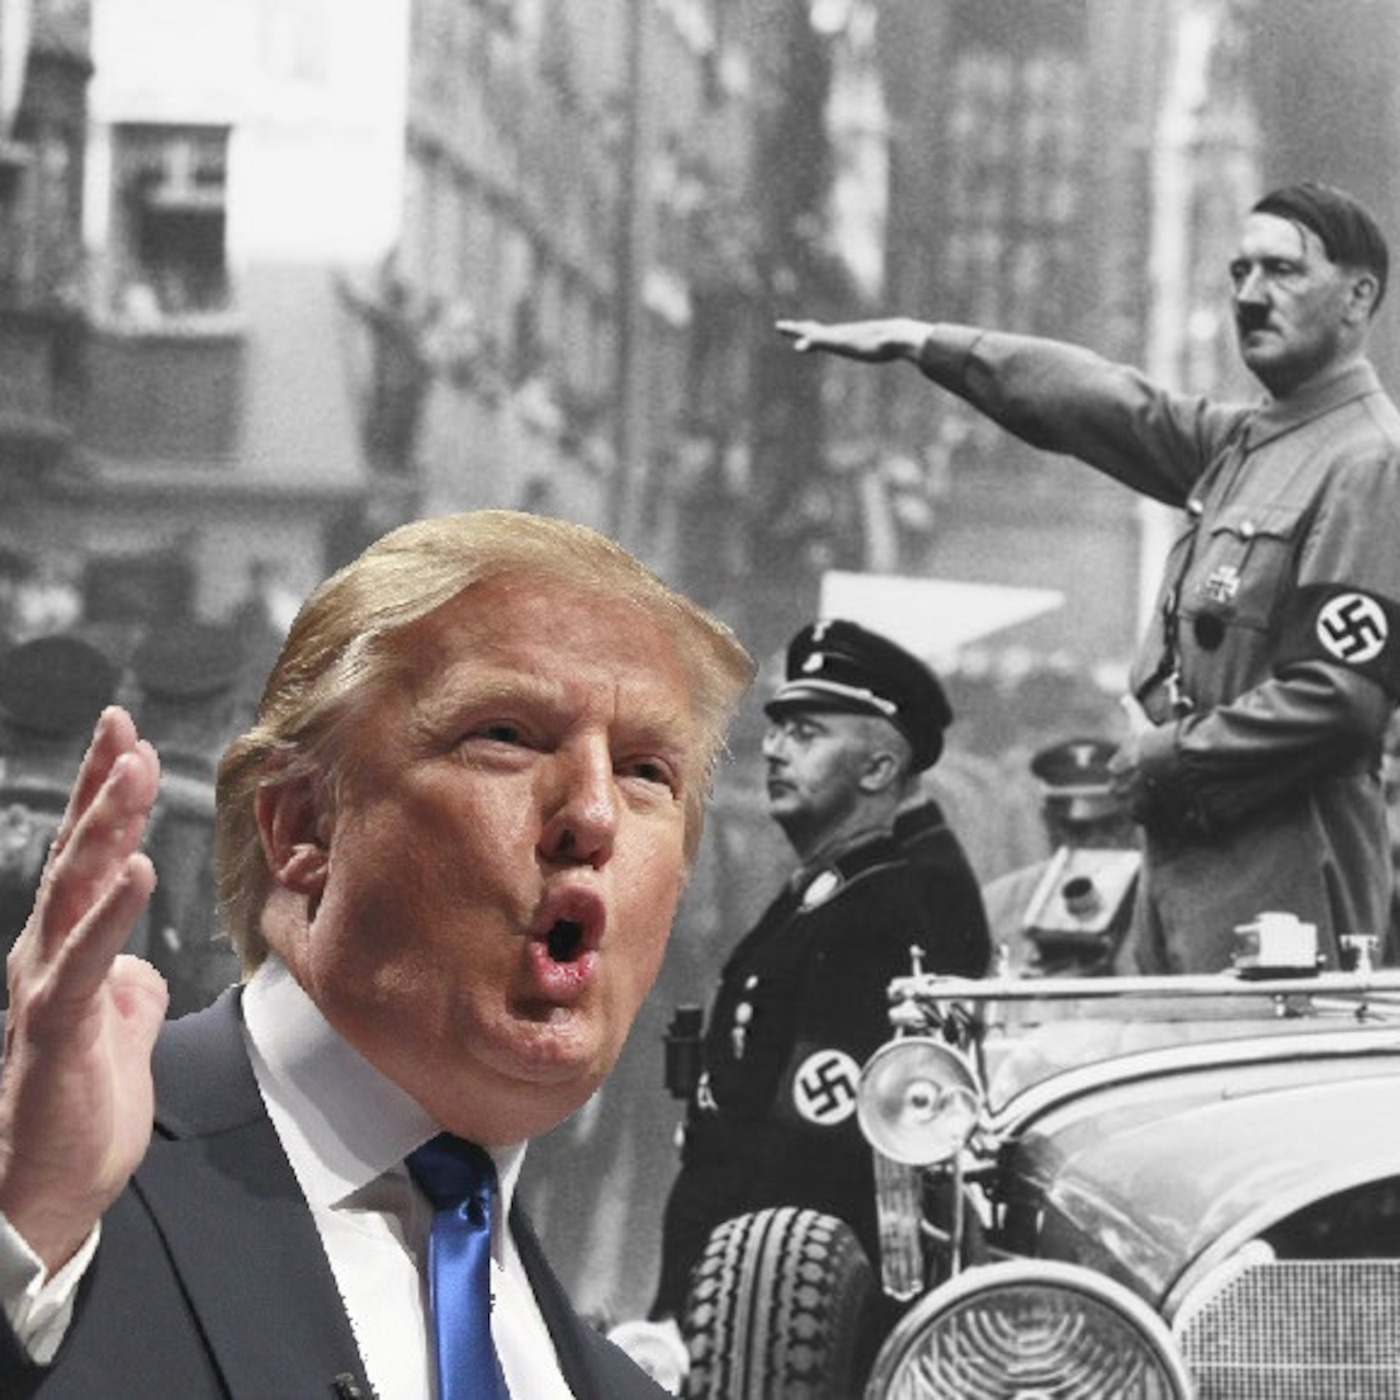 Trump Compared to Hitler (and Mussolini) (Episode 13)